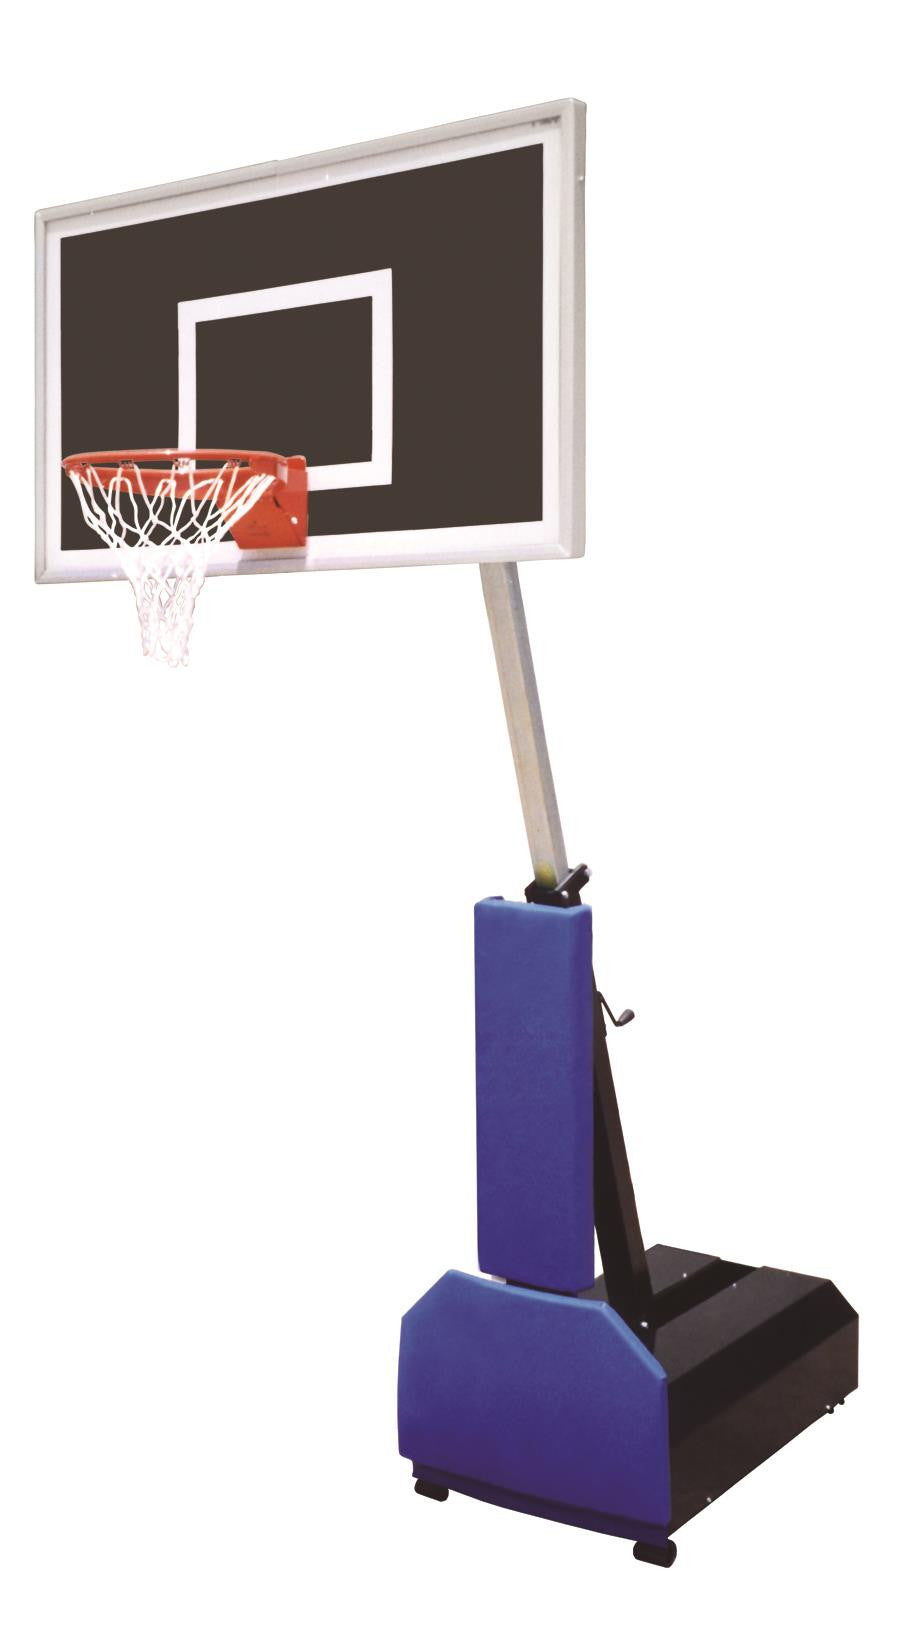 First Team Fury Eclipse Adjustable Portable Basketball Hoop 60 inch Smoked Glass